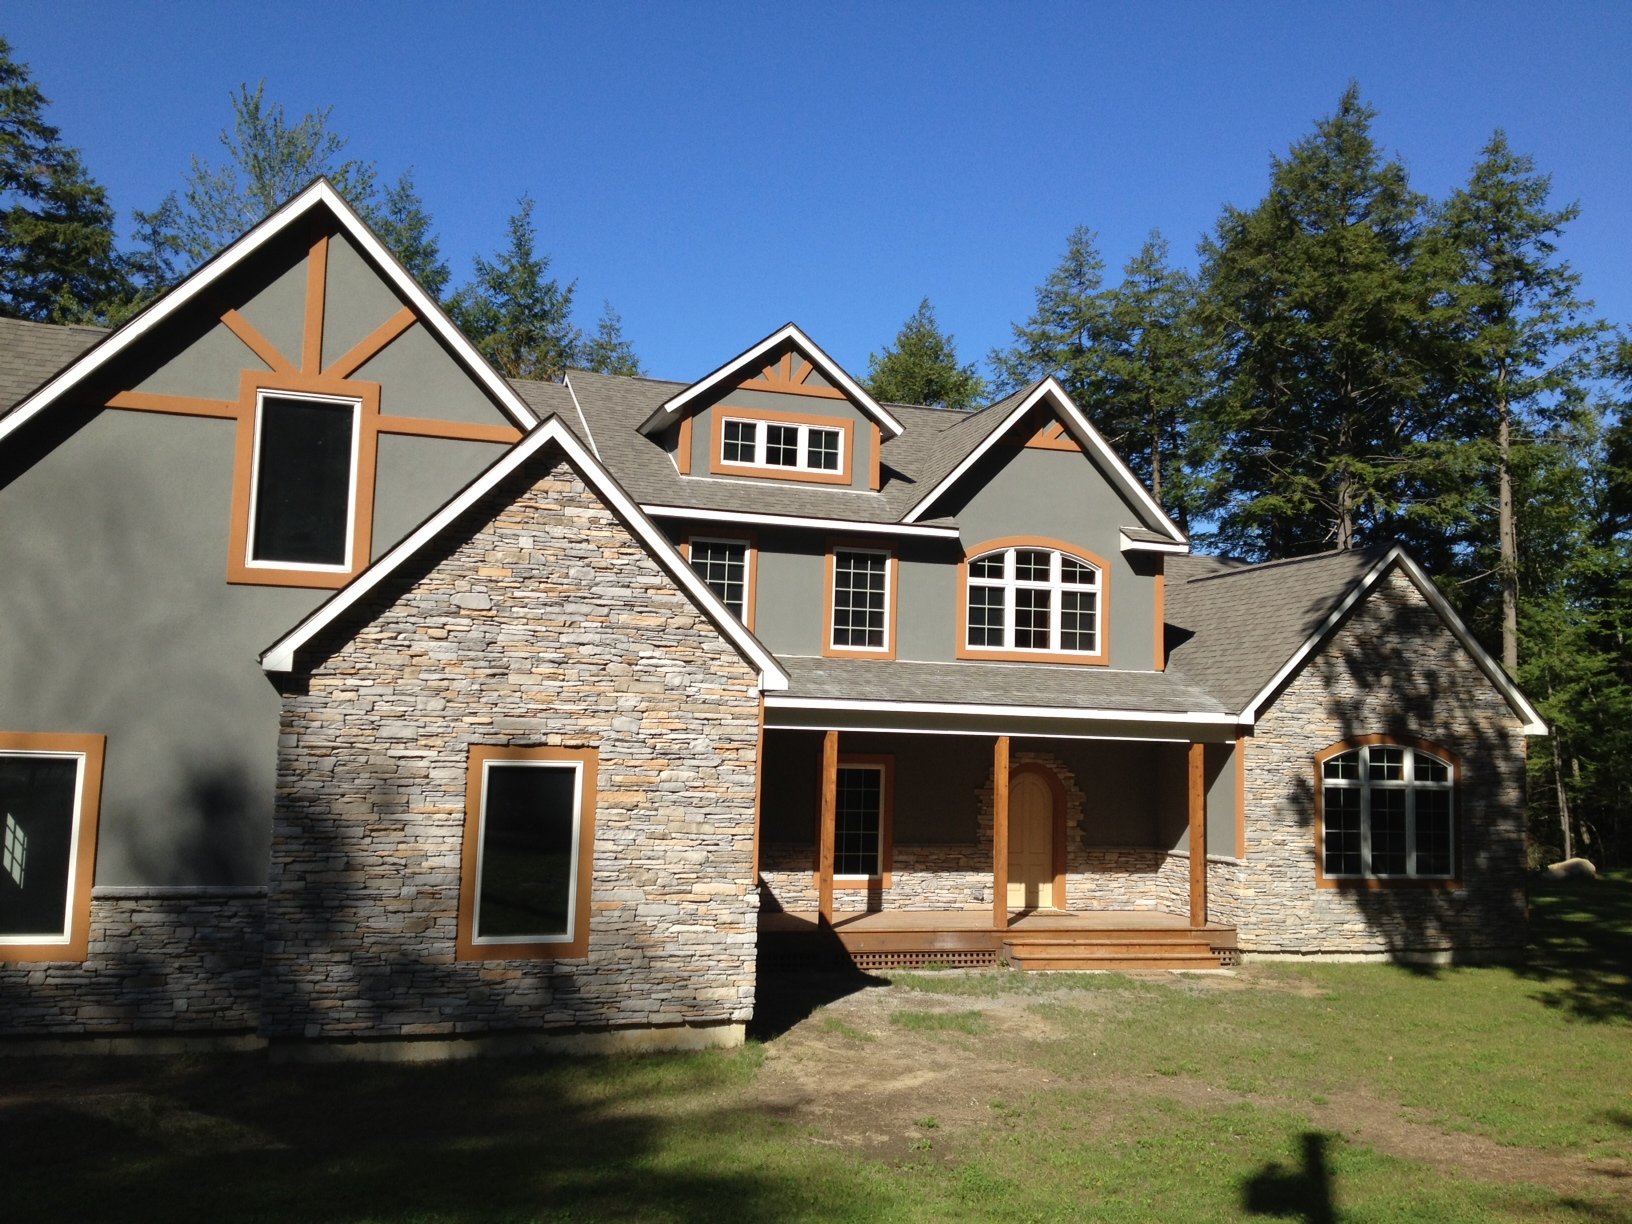 Custom modular homes saratoga construction llc Custom made houses